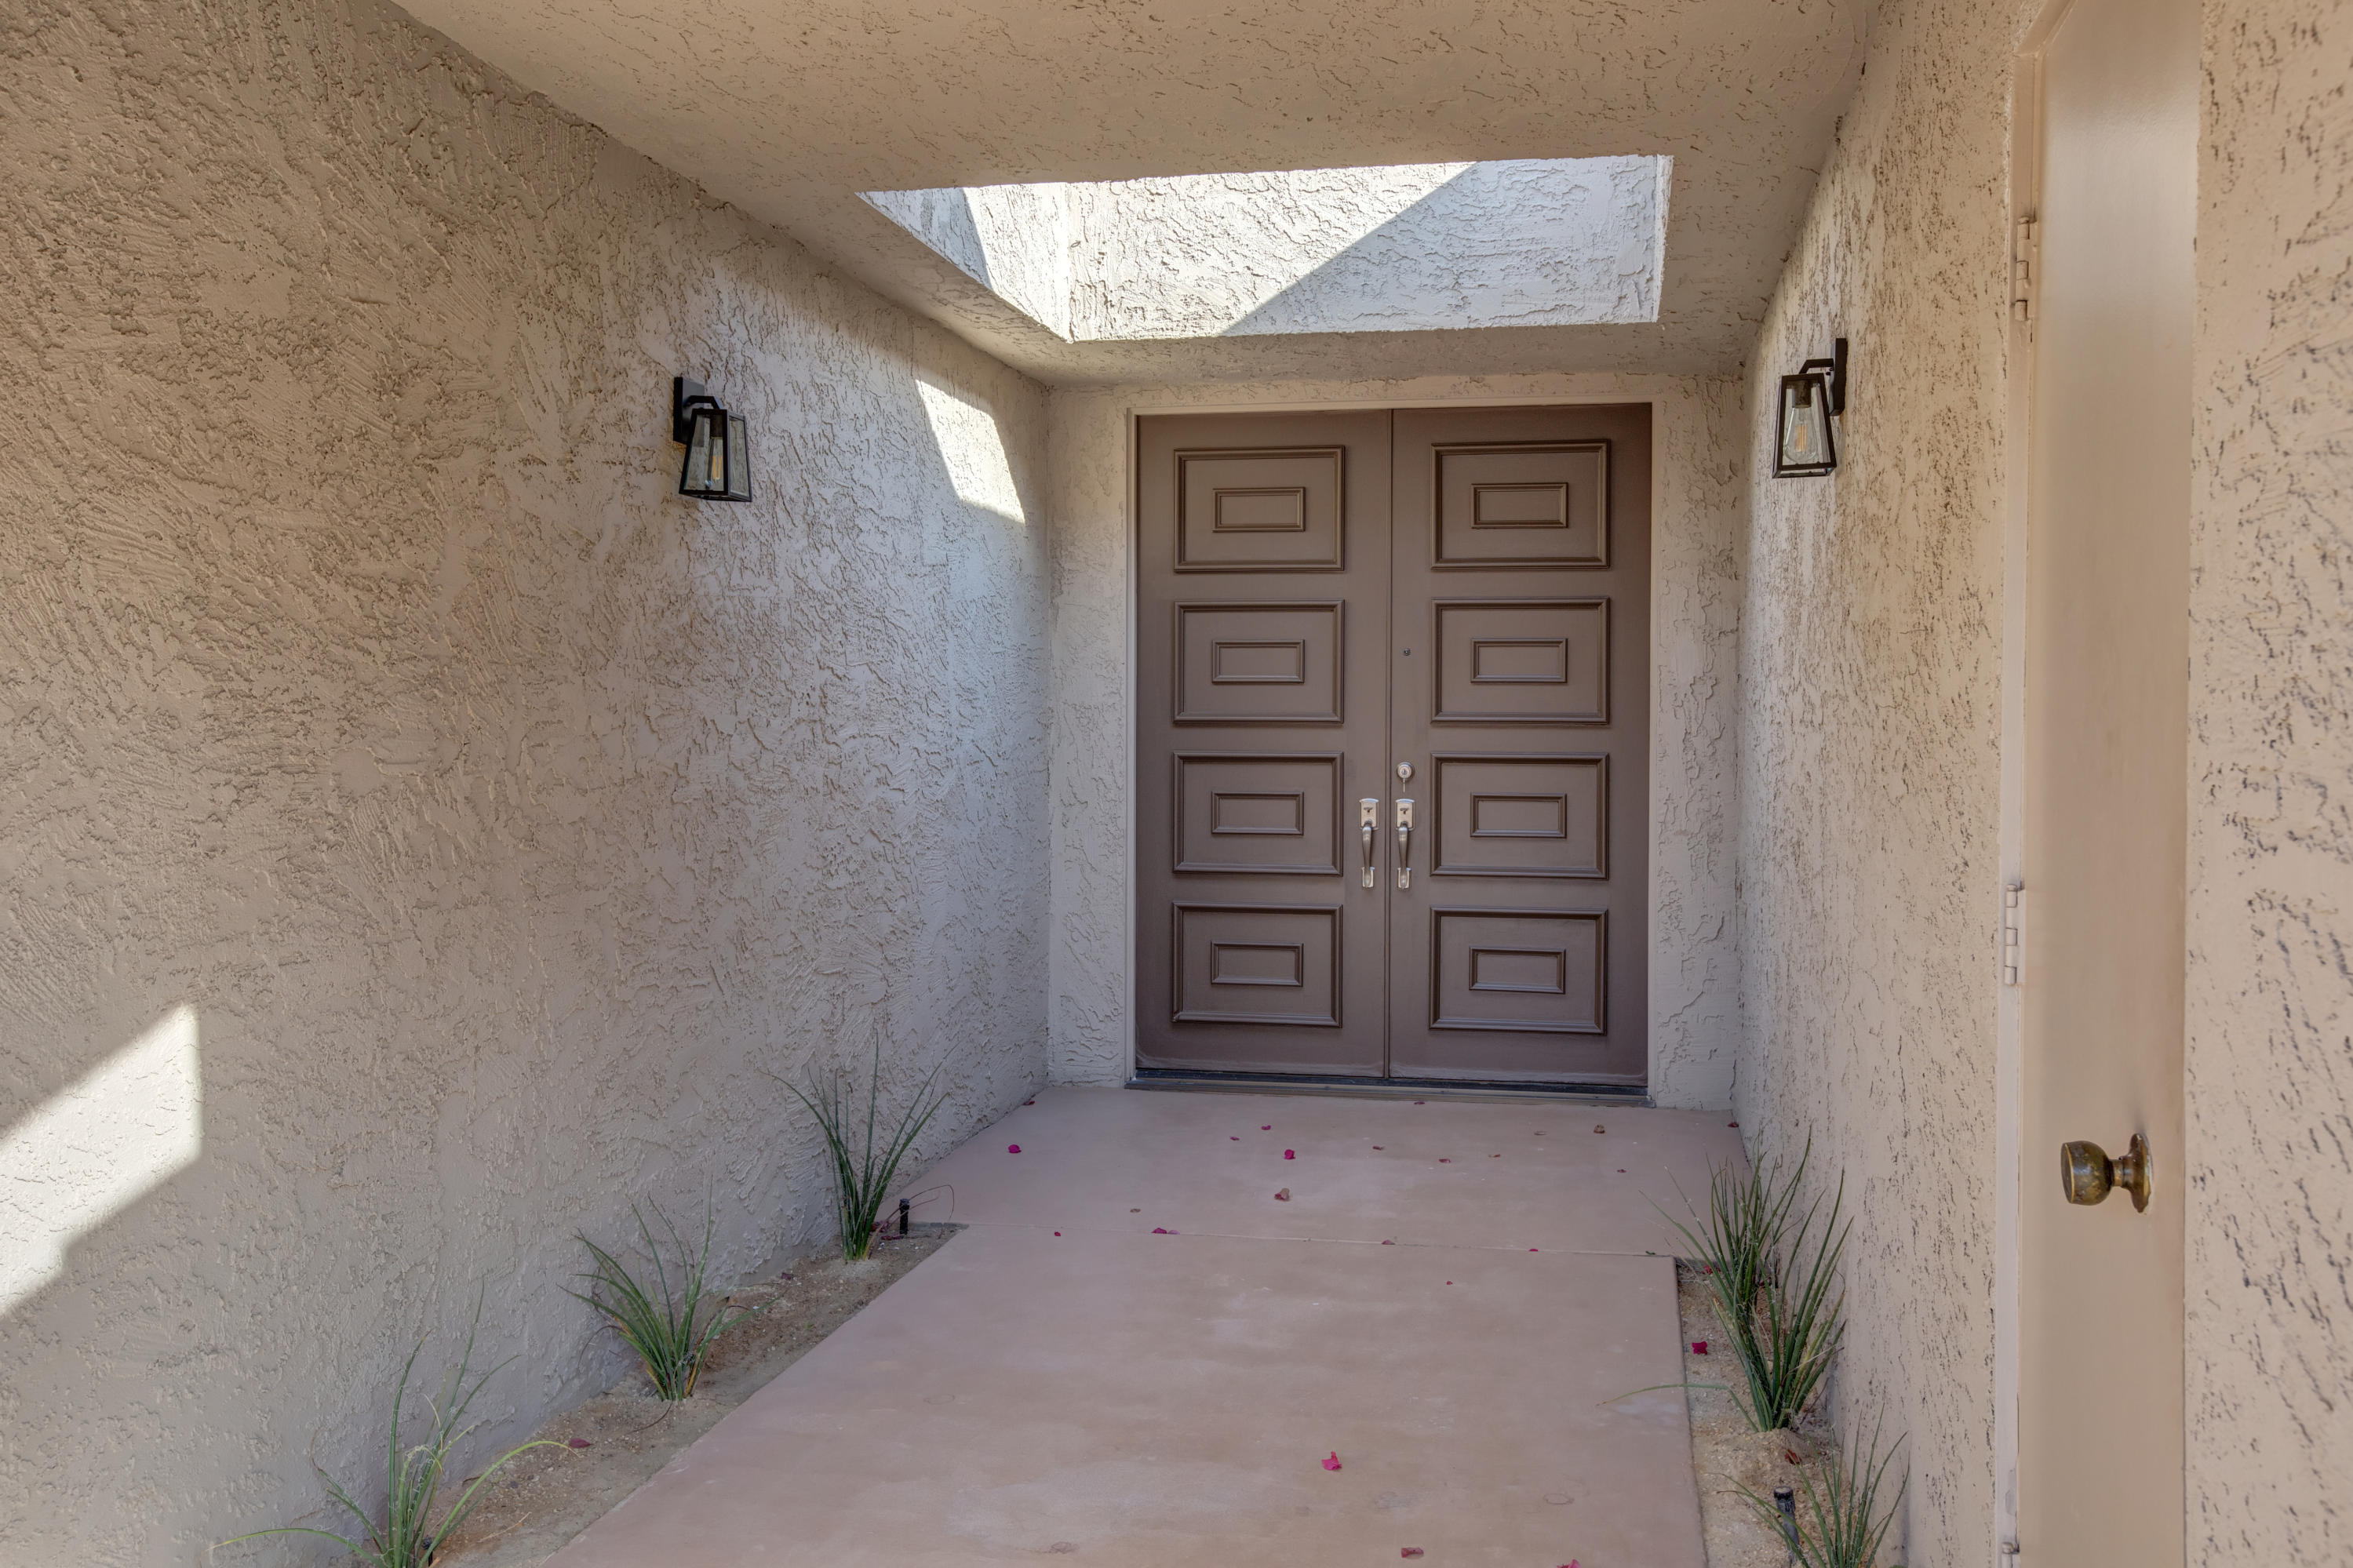 32 Lafayette Drive, Rancho Mirage, California 92270, 3 Bedrooms Bedrooms, ,3 BathroomsBathrooms,Residential,For Sale,32 Lafayette Drive,219036785